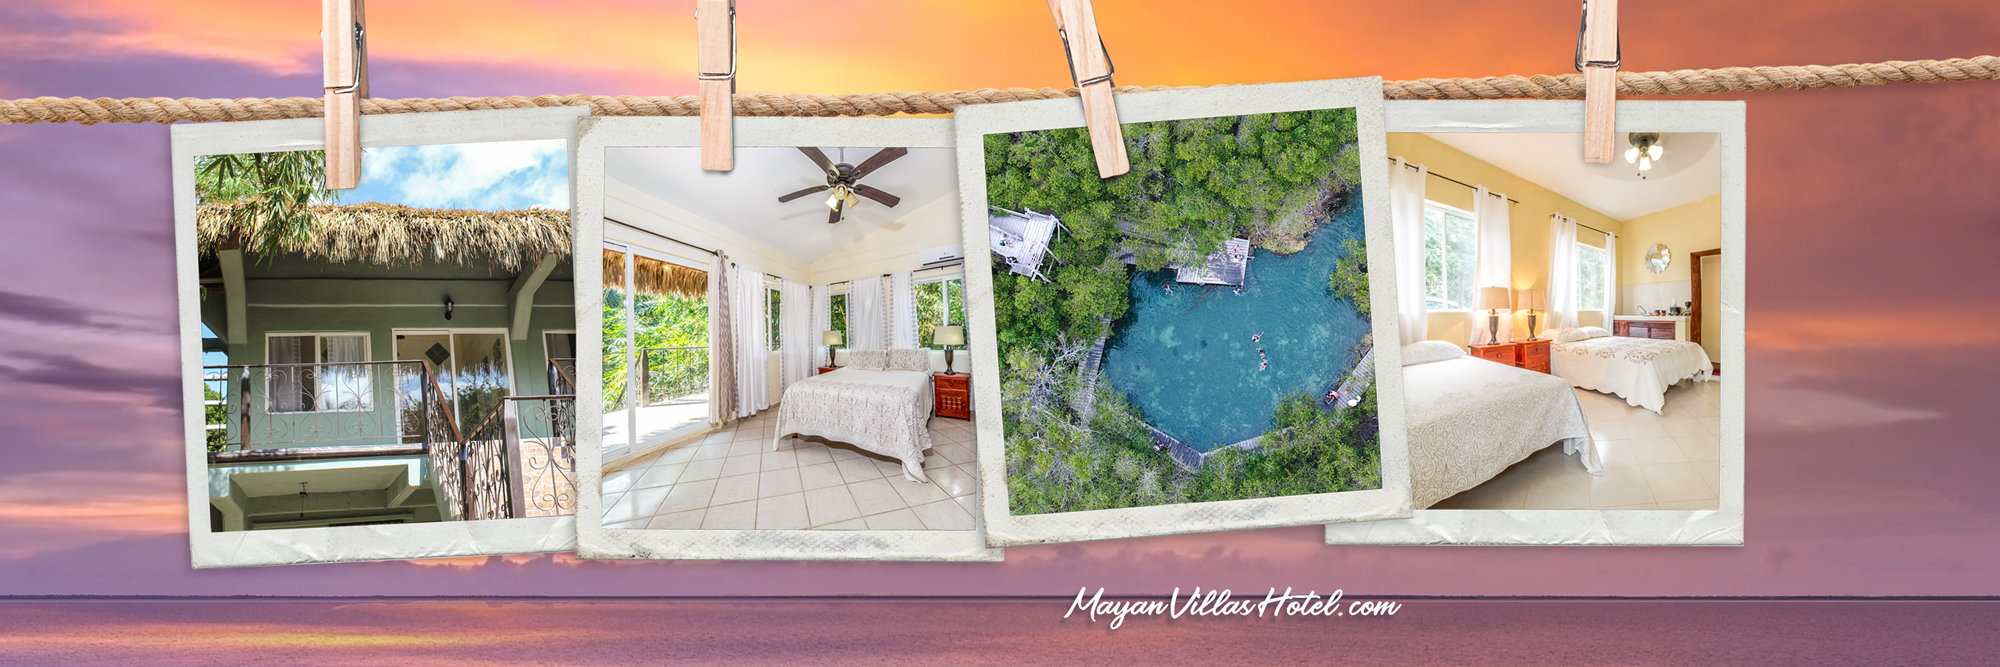 yucatan-adventure-mayan-villas-hote-home-slideshow3